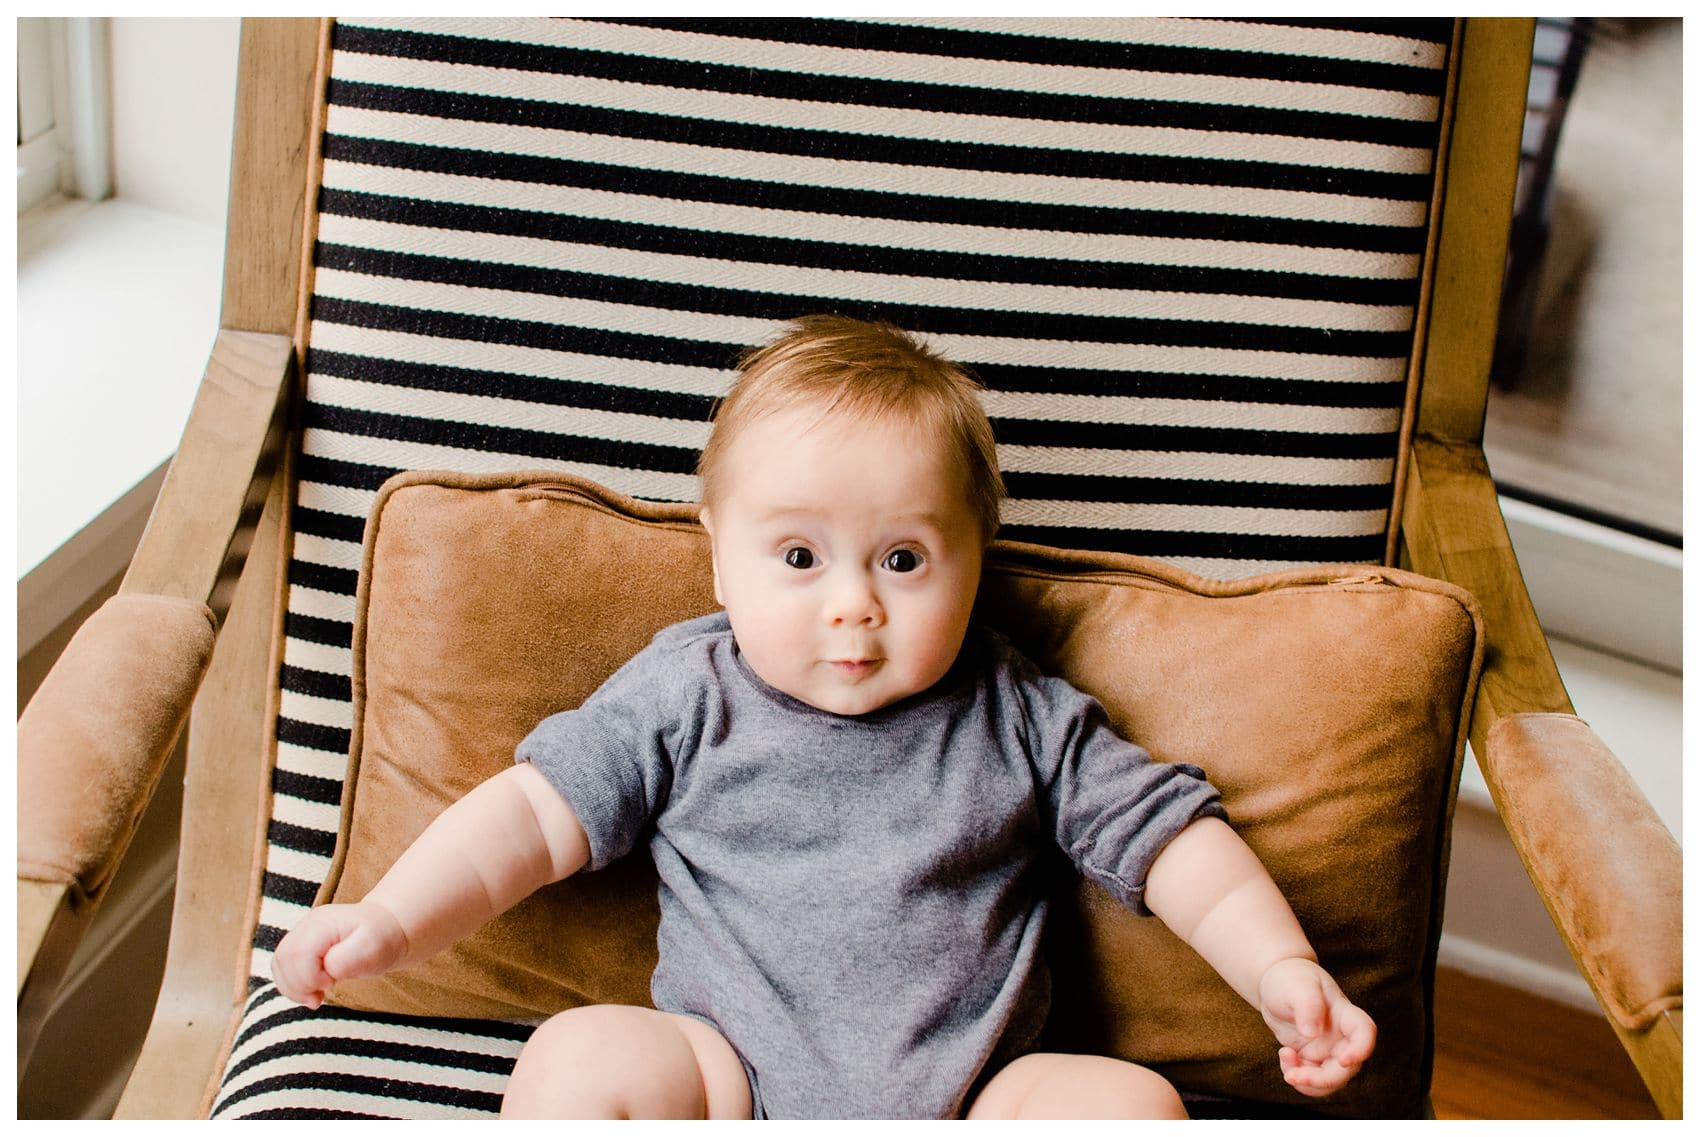 5 months old cute baby boy sitting on the chair and has a funny expressions in Hoboken